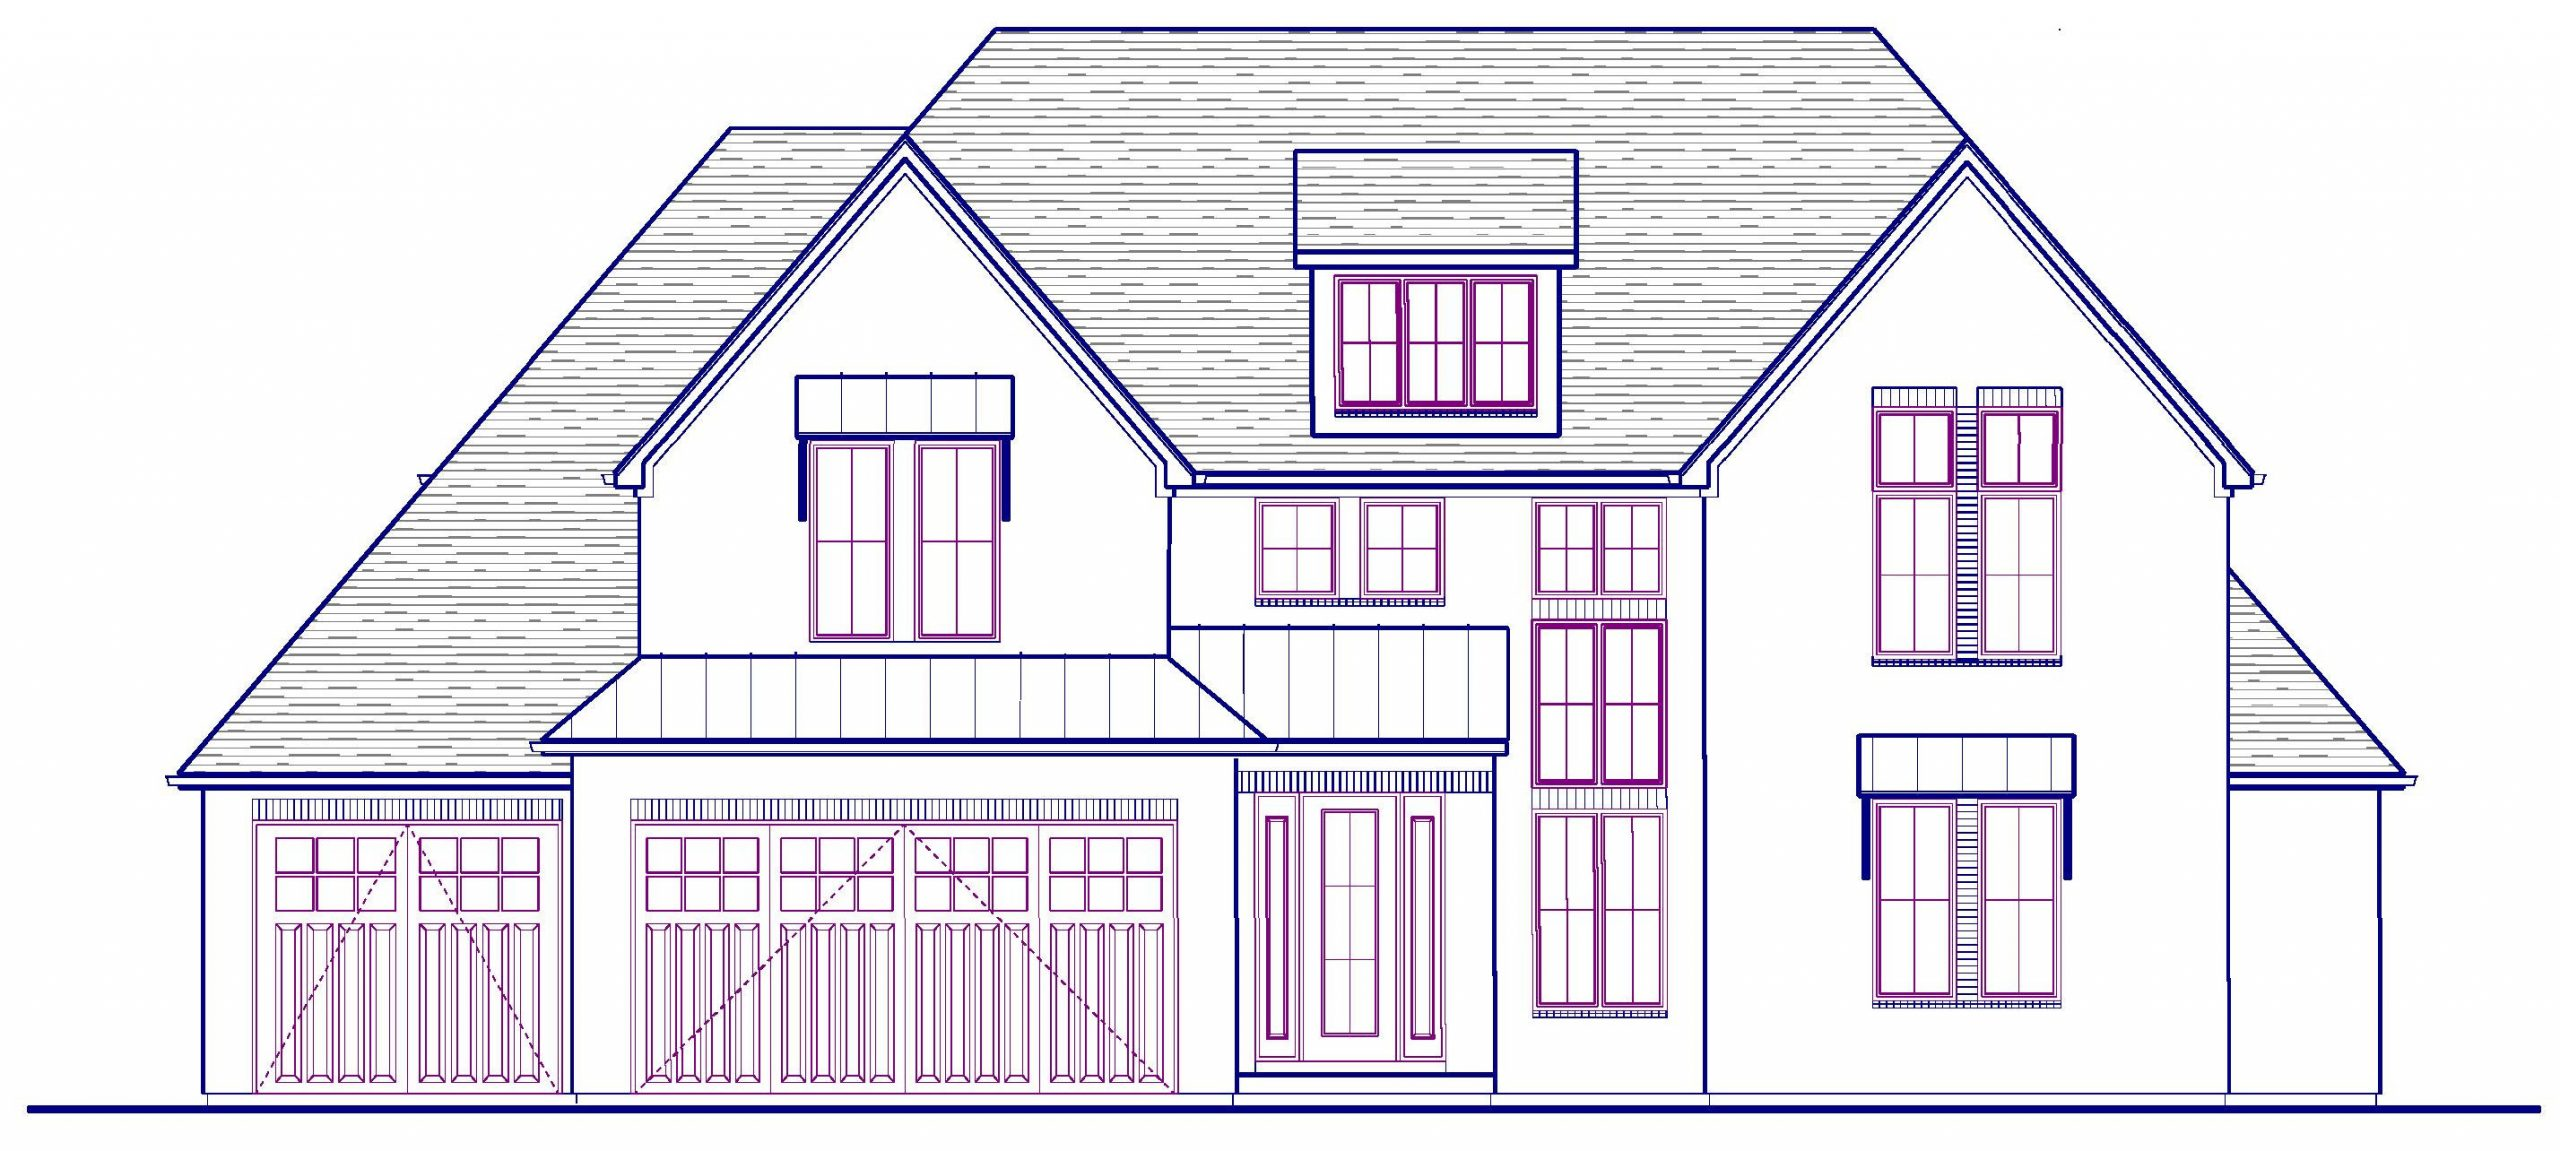 Front View Plan – Hadley